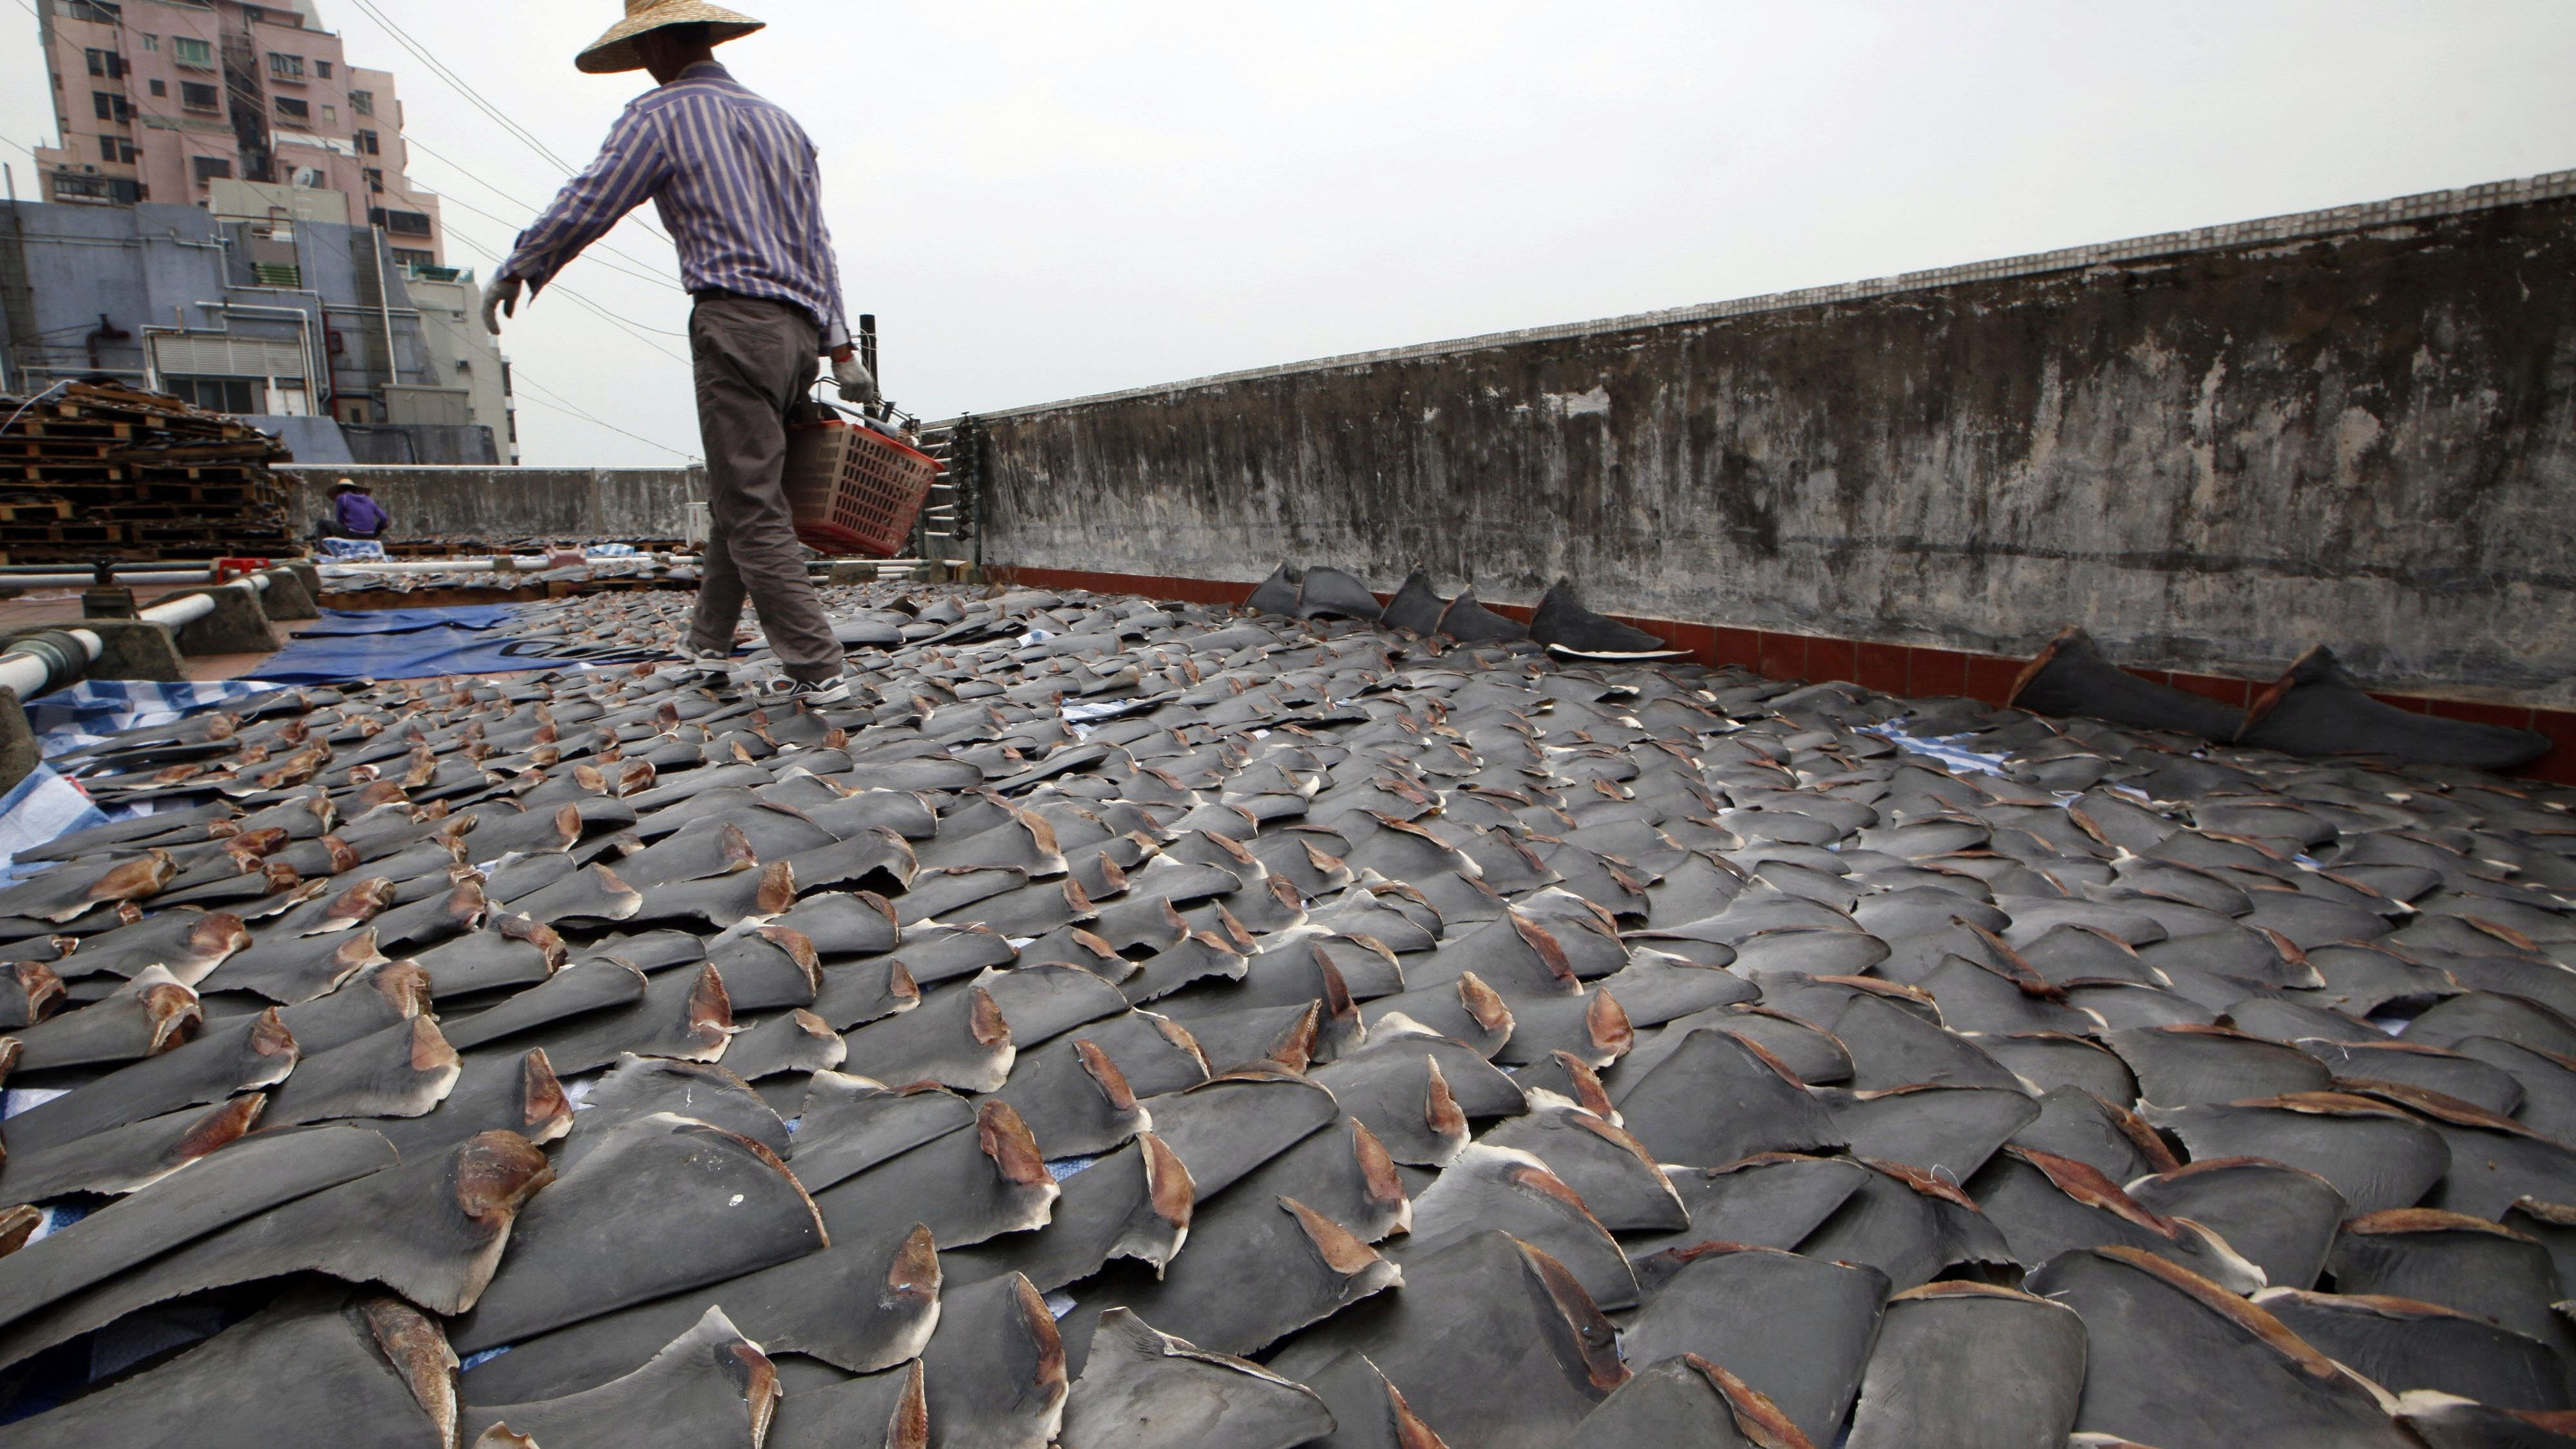 FILE - In this Jan. 3, 2013 file photo, a worker collects pieces of shark fins dried on the rooftop of a factory building in Hong Kong. For centuries, shark fin, usually served as soup, has been a coveted delicacy in Chinese cooking. In the United States, members of the fishing industry say they will dig in against 2016 legislation in Congress that proponents believe will help shut down the country's shark fin industry for good. (AP Photo/Kin Cheung, File)